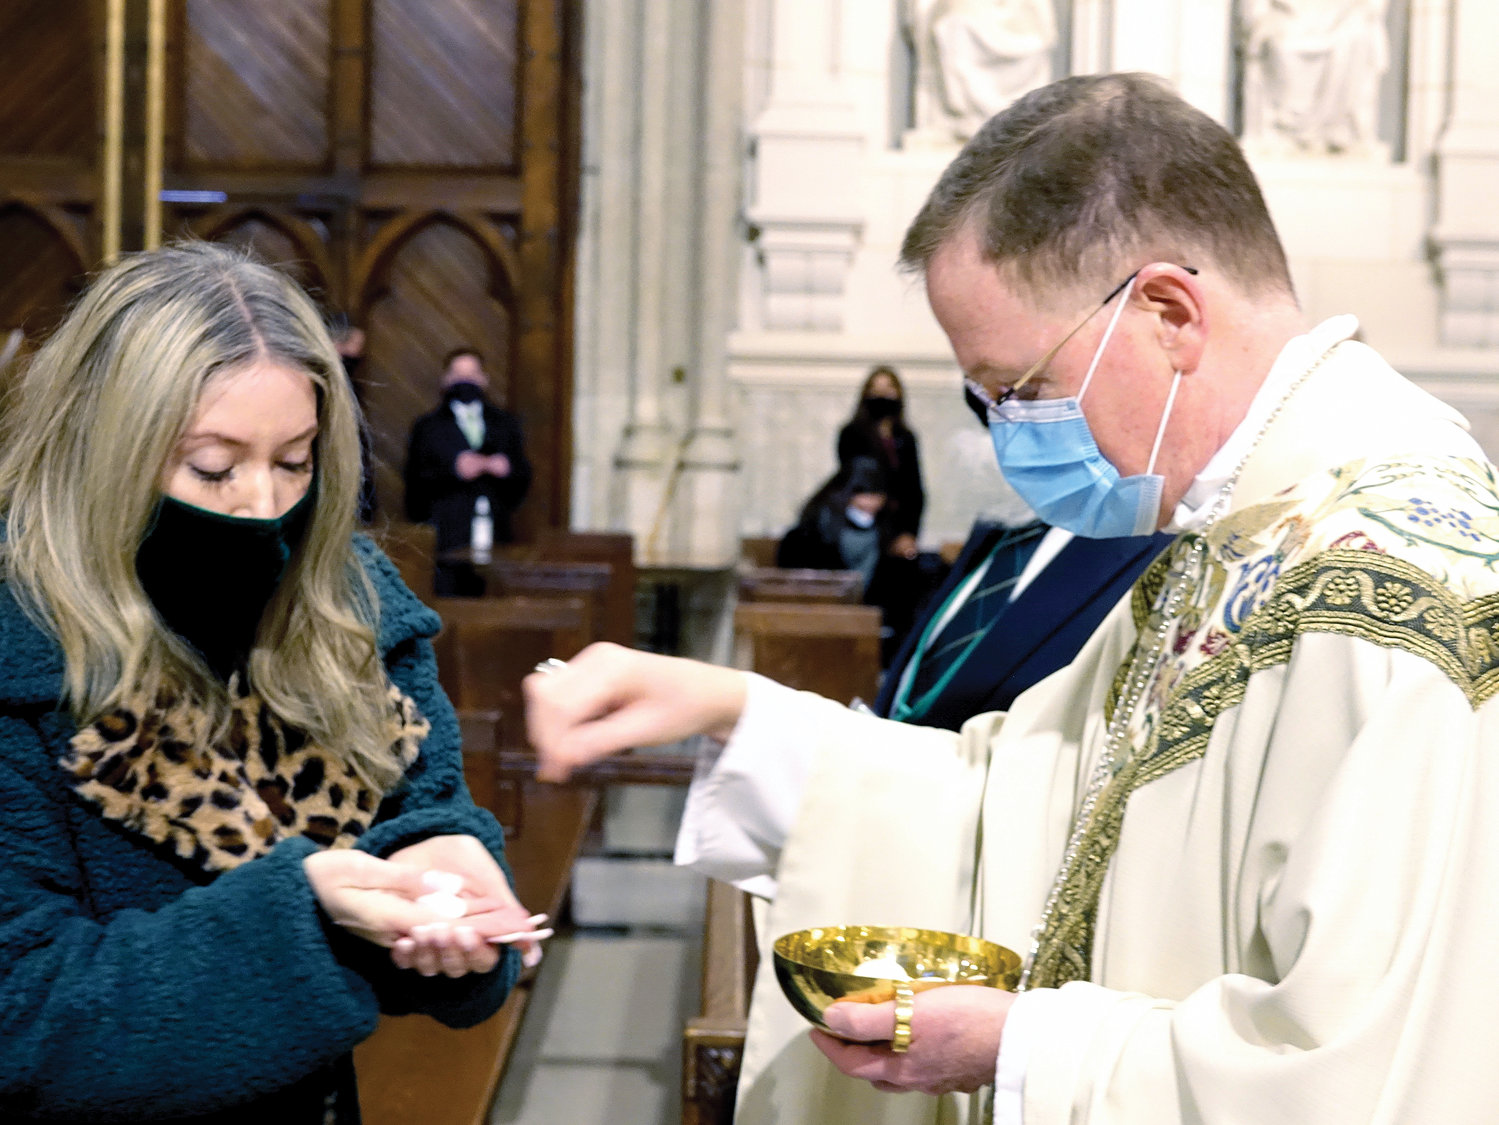 Auxiliary Bishop Edmund Whalen distributes the Eucharist during the morning liturgy. The bishop was cited as part of the parade's first-ever honor guard of first responders and essential workers.